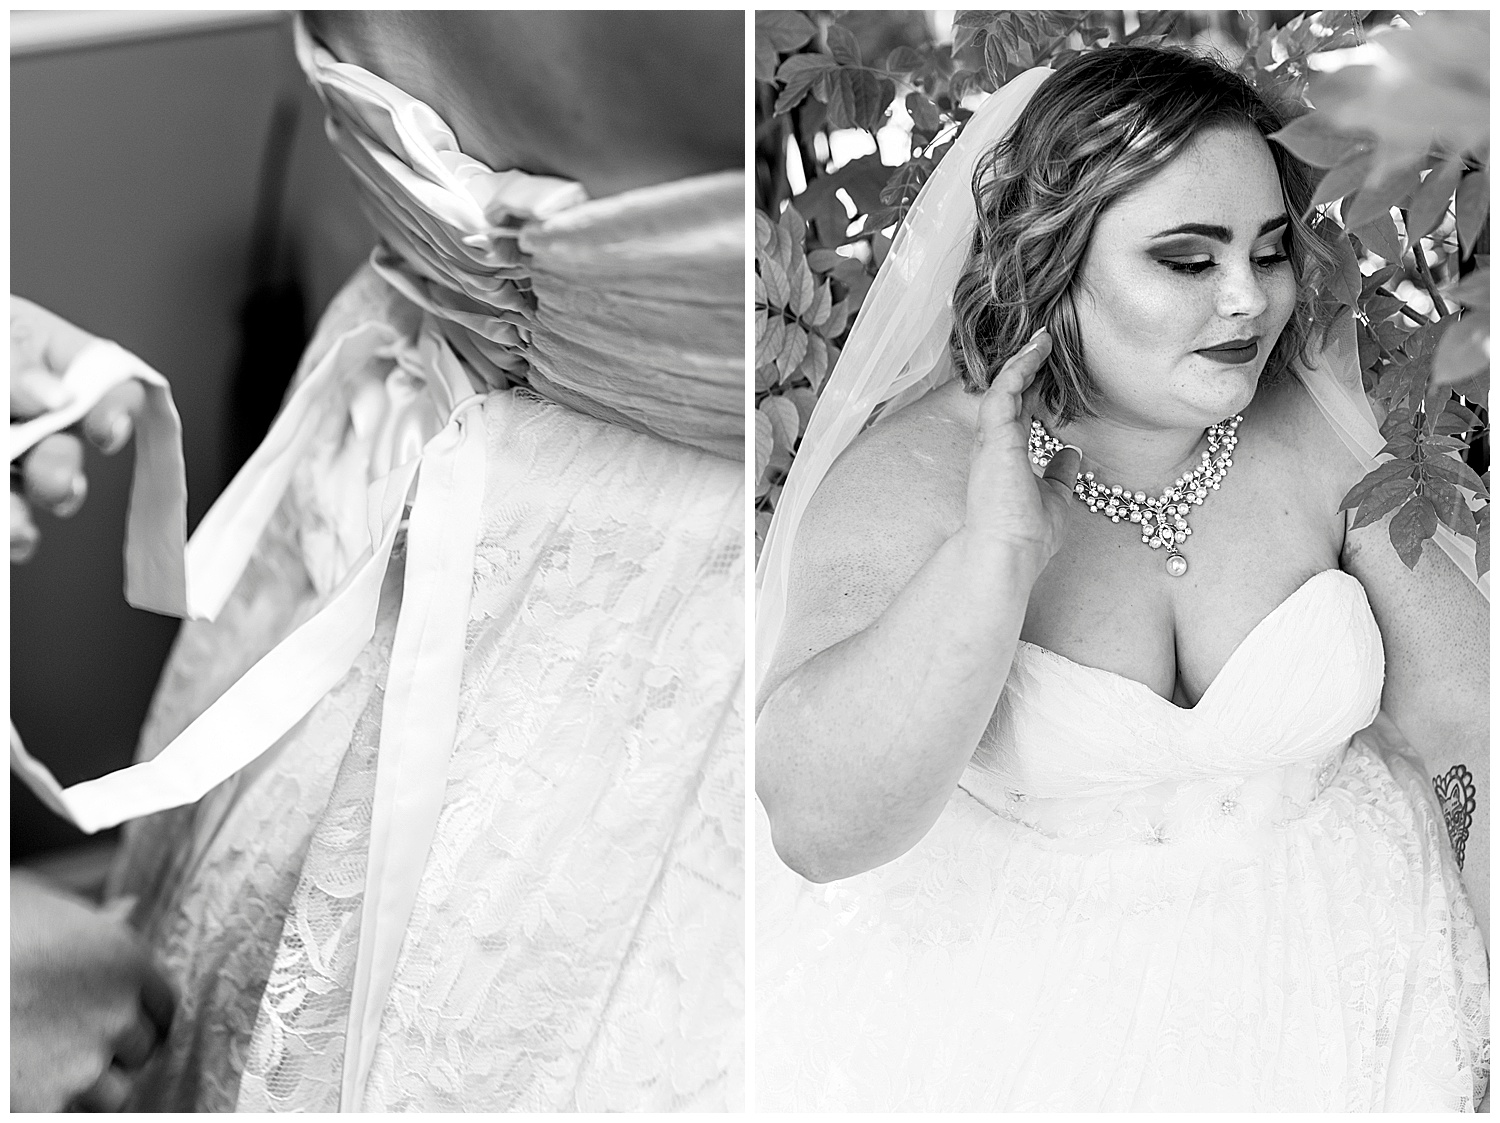 Utah Same Sex Wedding| Salt Lake City, Utah | Bri Bergman Photography 04.jpg